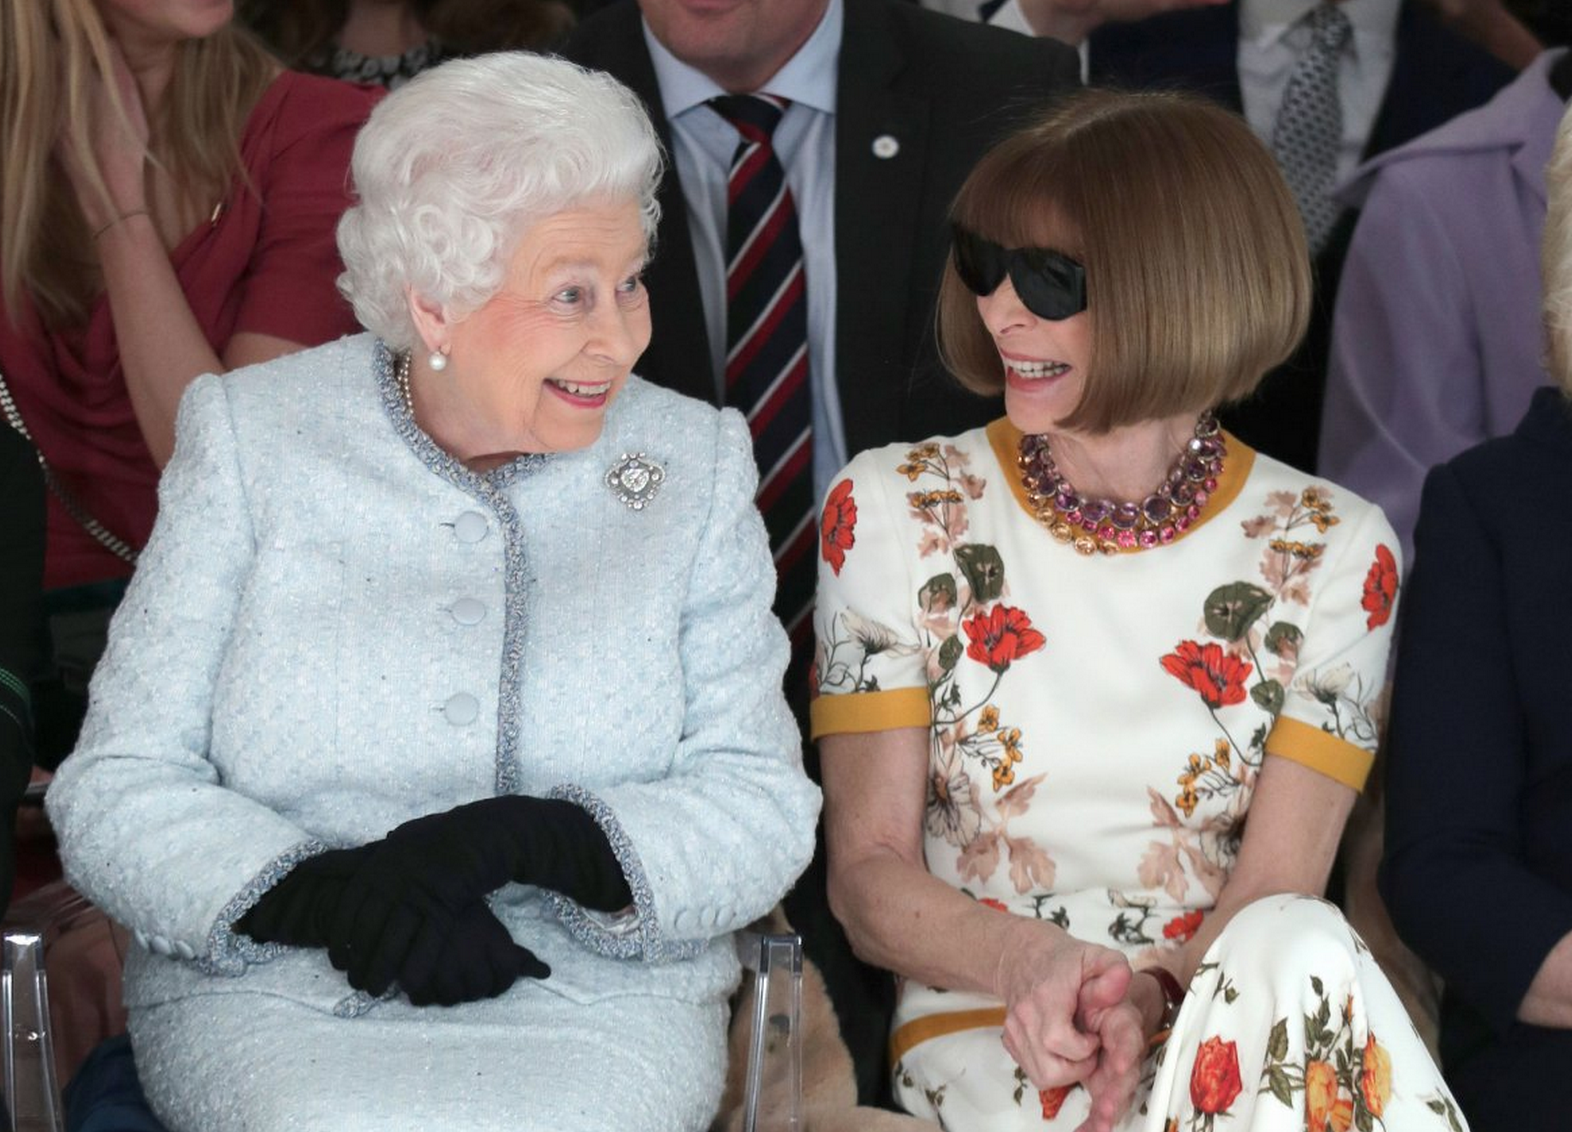 """This is the CUTEST BEST photo of The Queen ever. But Anna Wintour needs to remove her sunglasses. So rude.""    #LFW   Photo by Tristan Fewings/BFC/Getty Images"